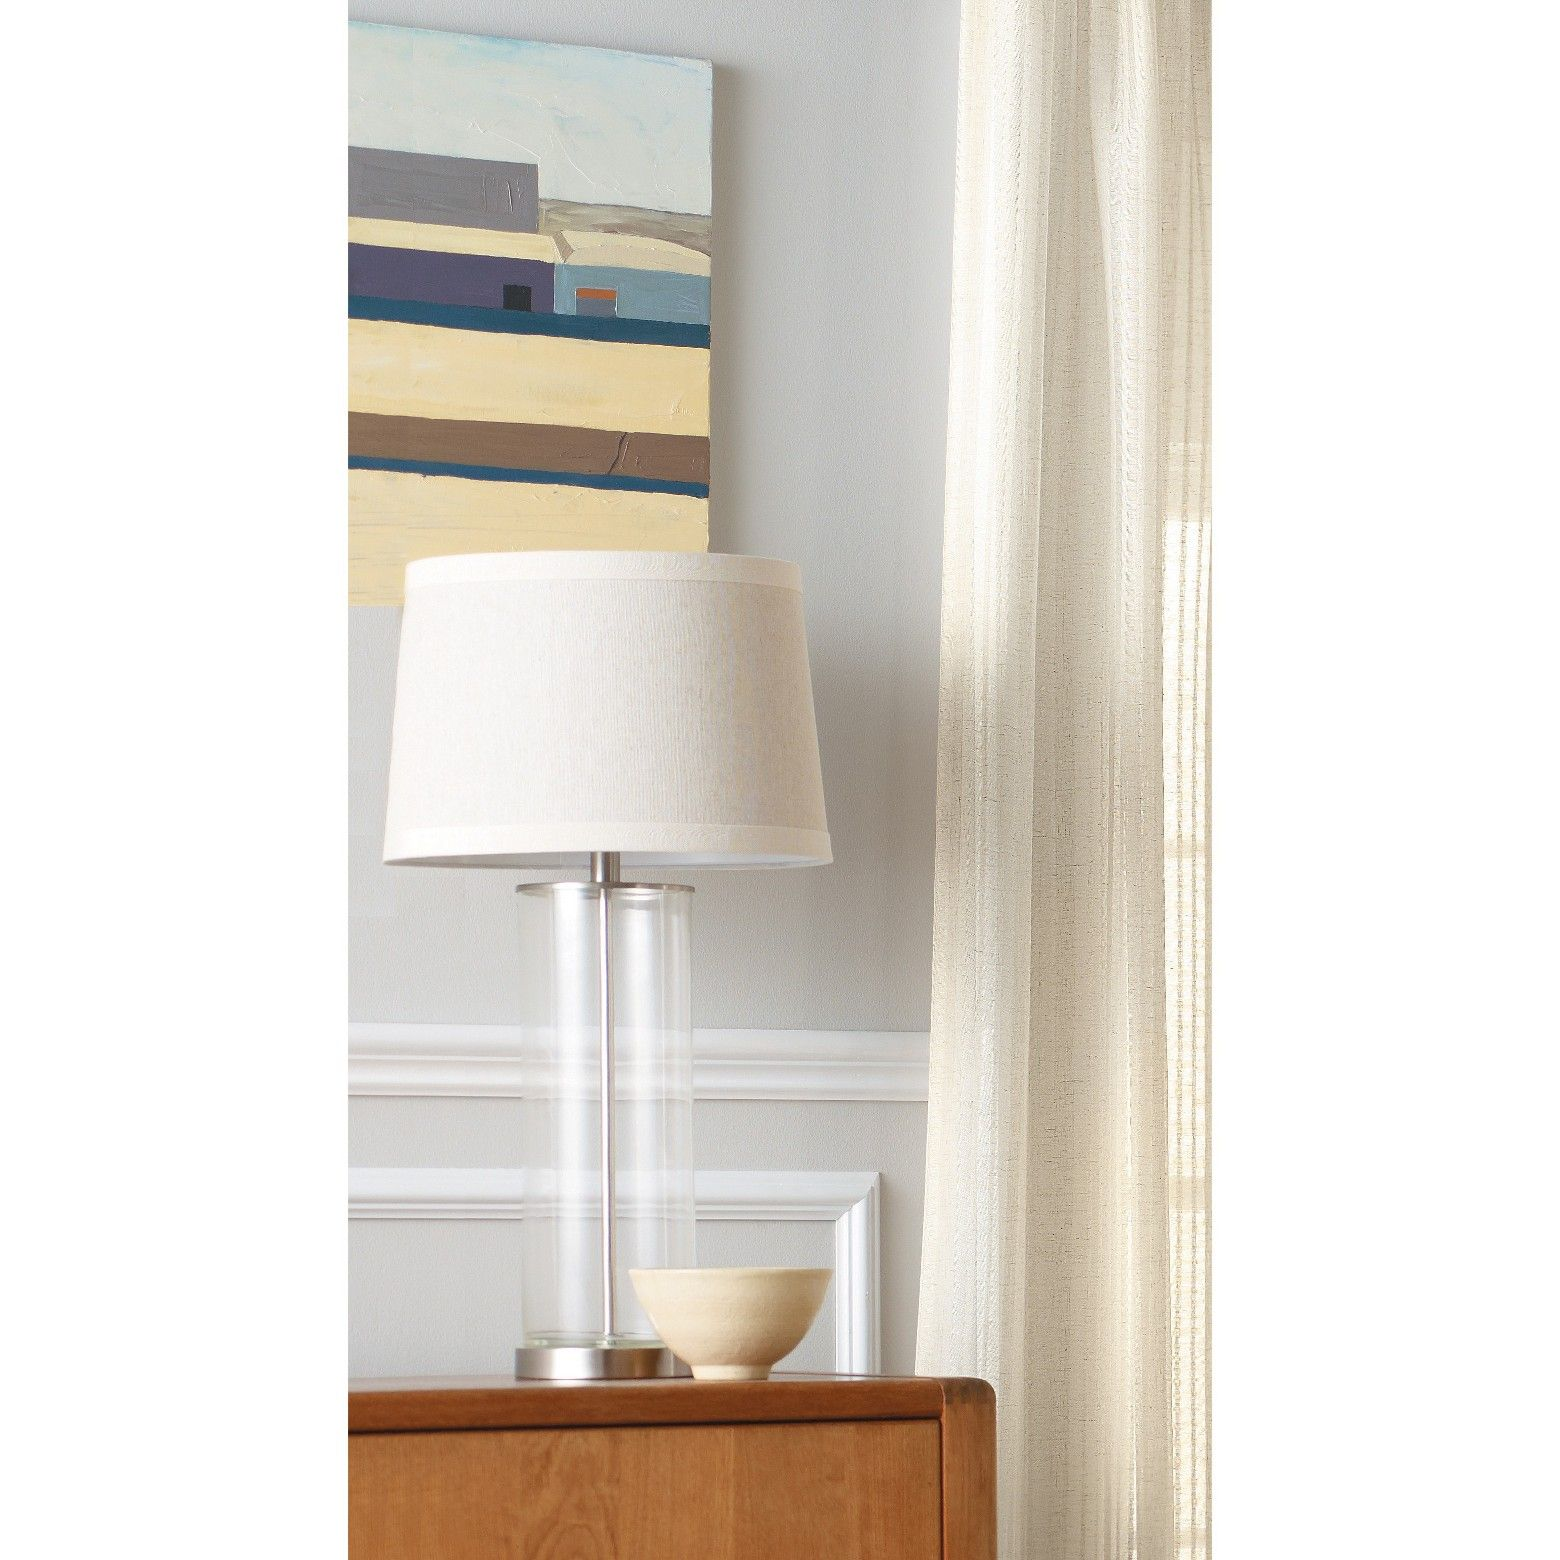 This Versatile Lamp Base From Threshold Complements A Wide Variety Of  Furnishings And Du0026eacute;cor